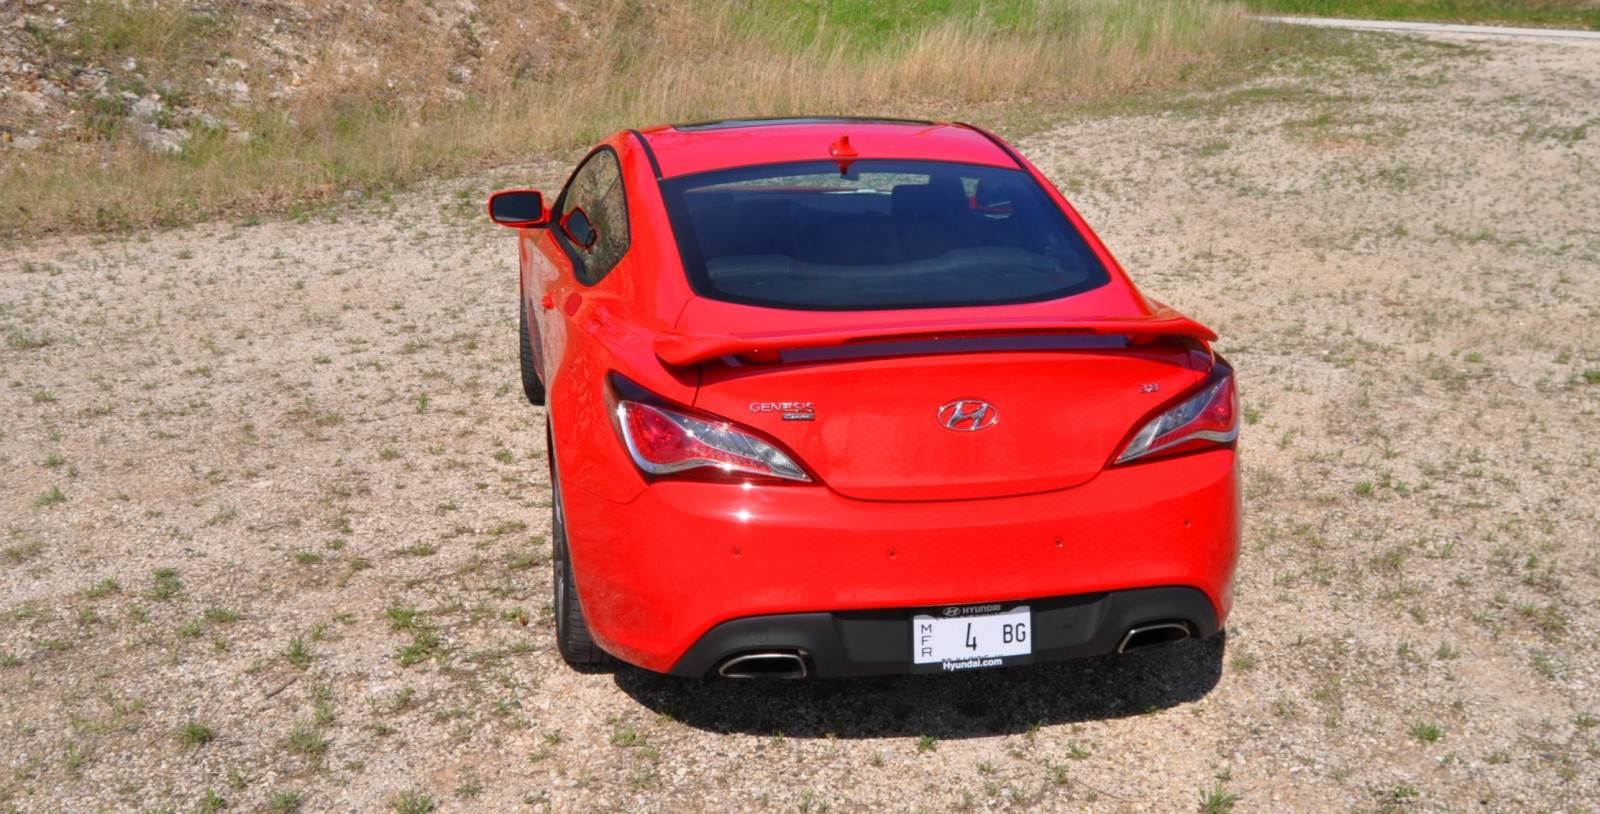 2014 hyundai genesis coupe 3 8l v6 r spec road test review of fast and fun rwd sportscar 90. Black Bedroom Furniture Sets. Home Design Ideas